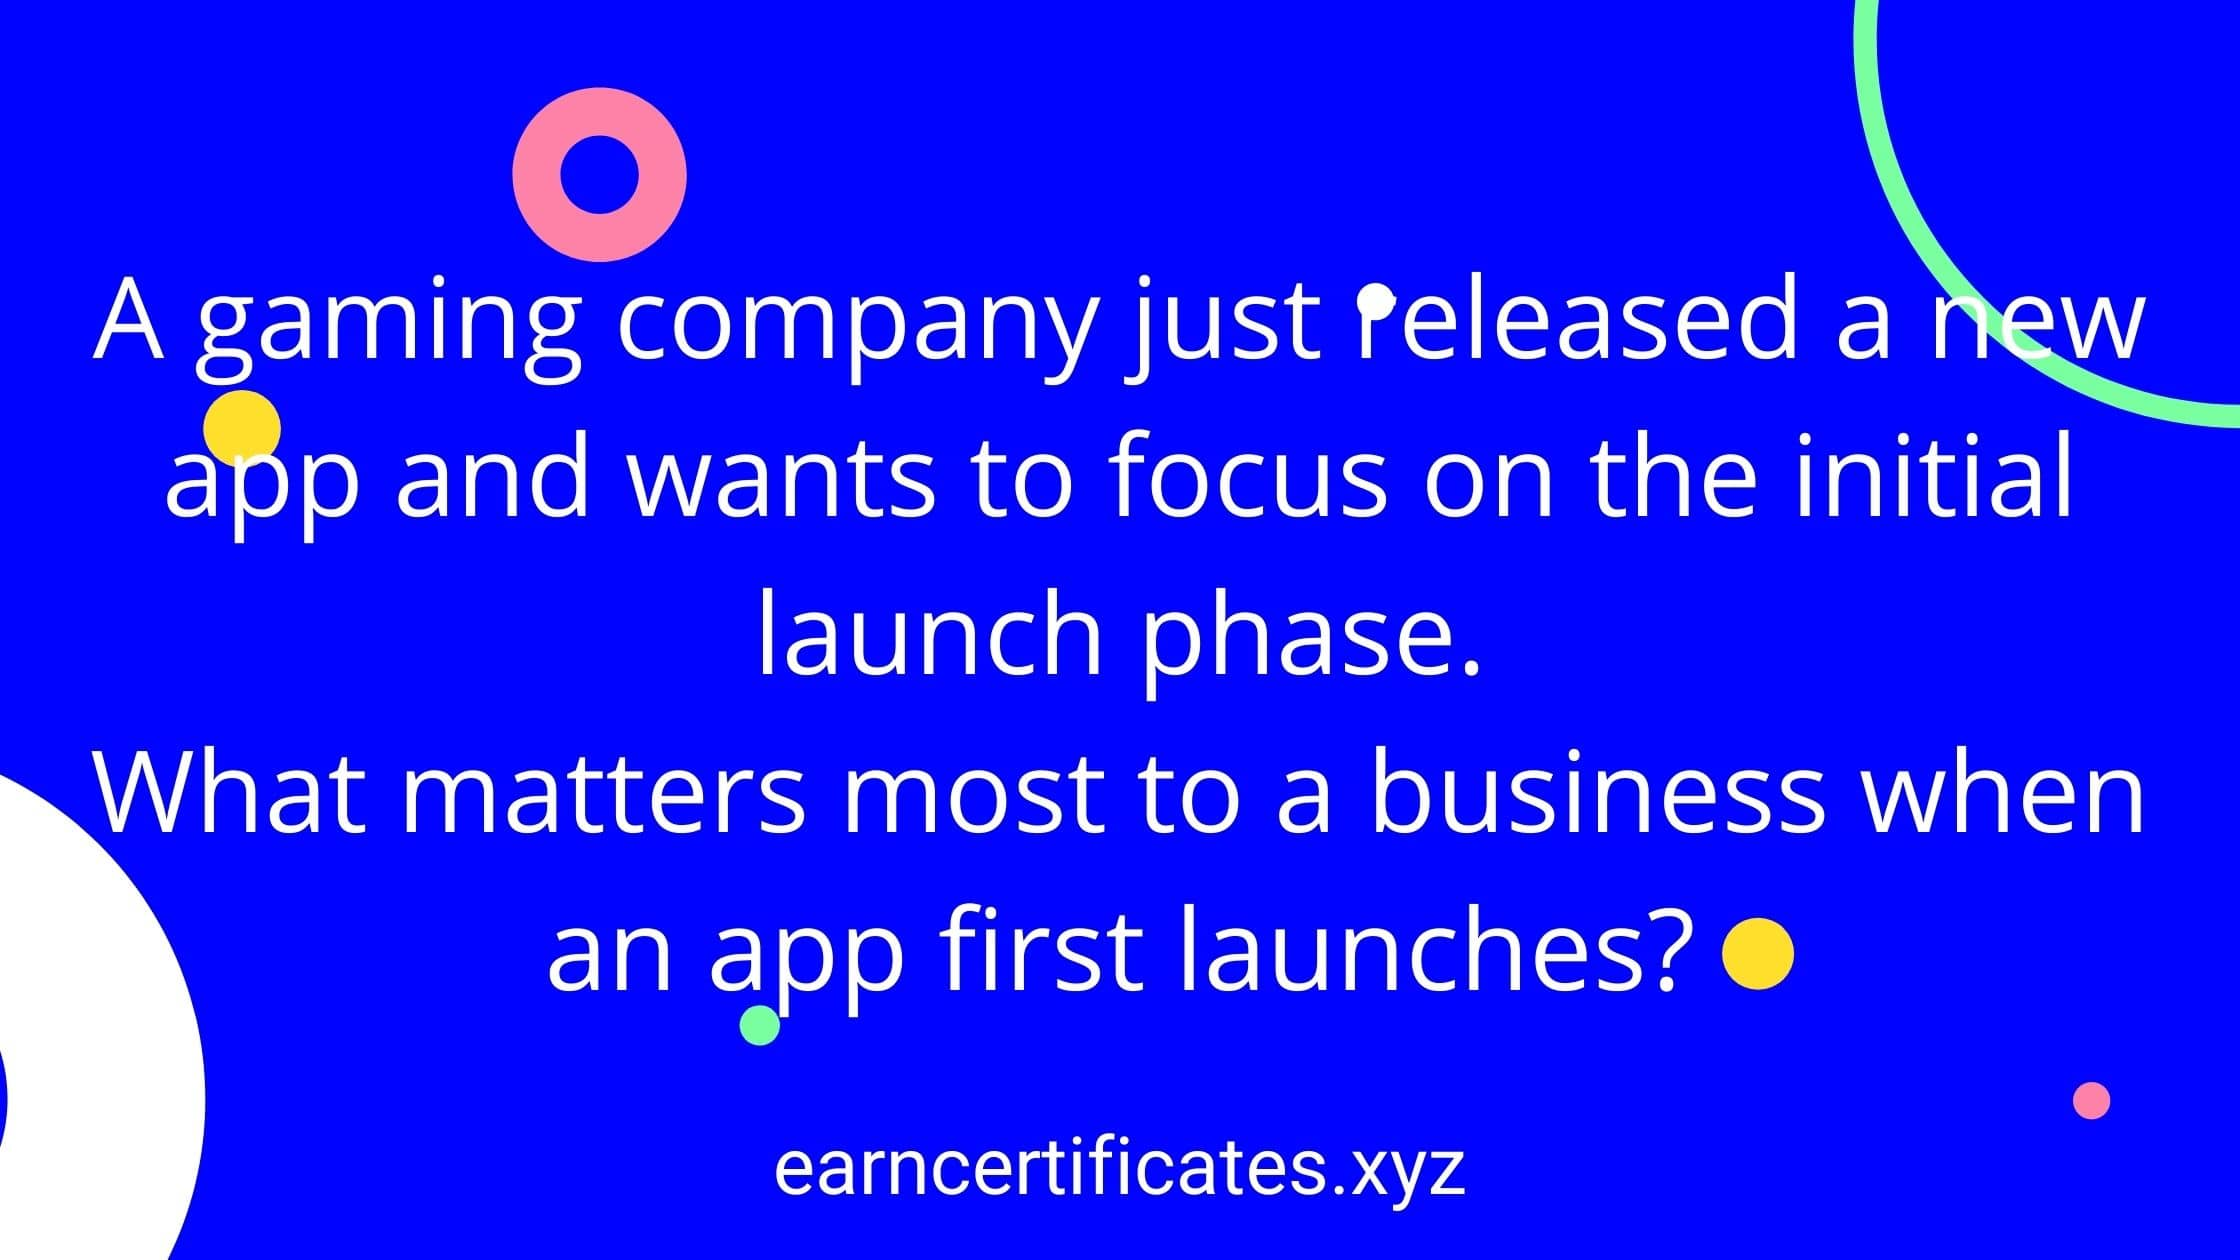 A gaming company just released a new app and wants to focus on the initial launch phase. What matters most to a business when an app first launches?